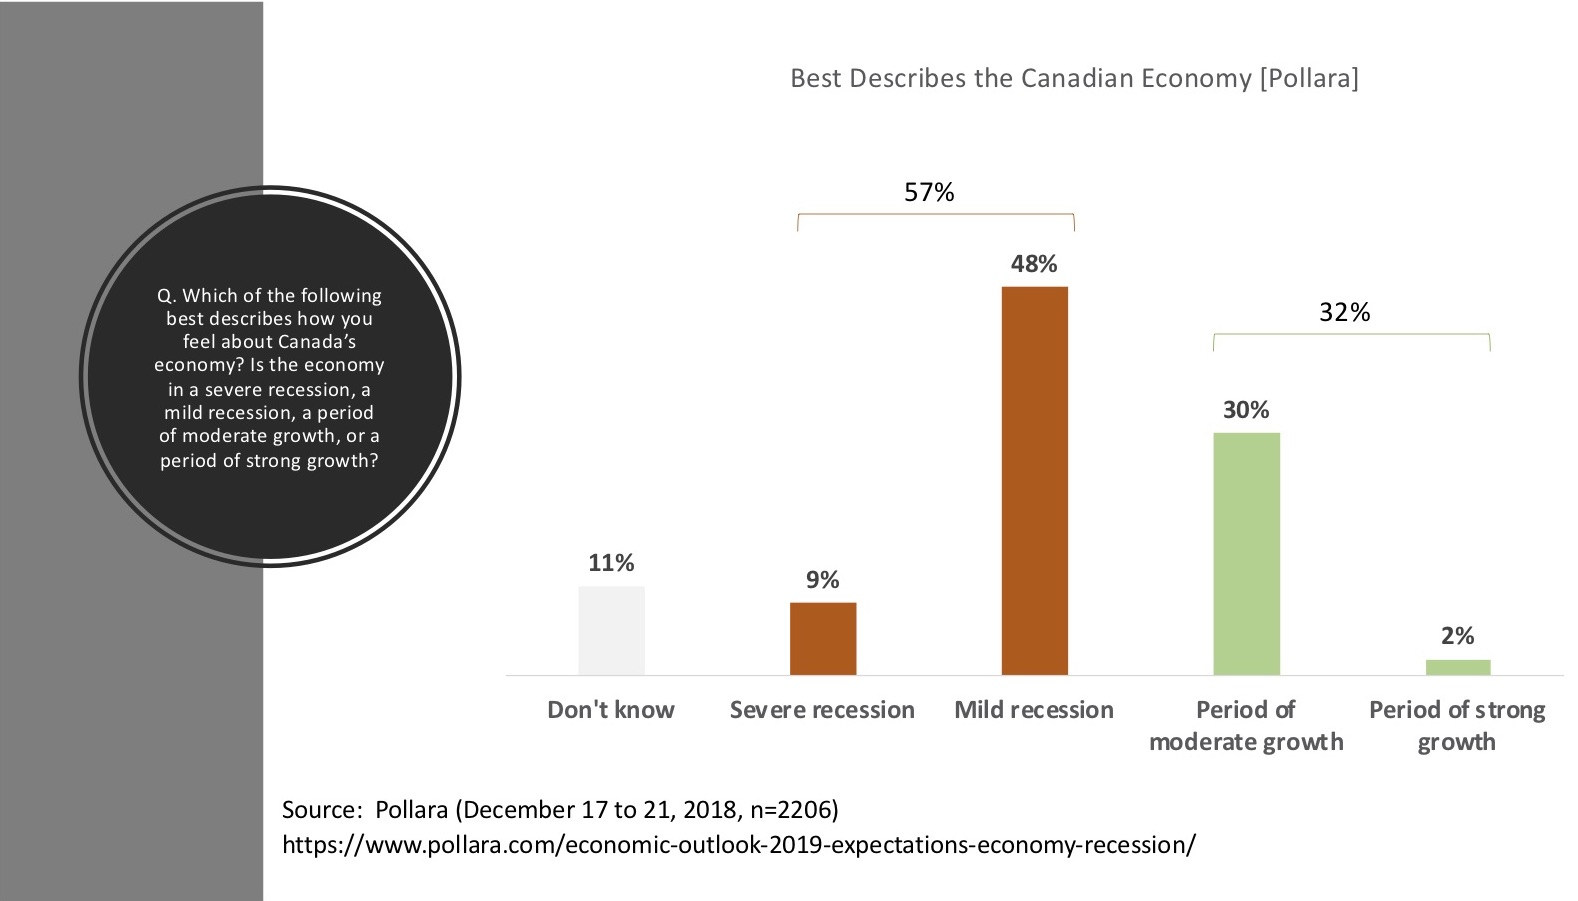 2019 recession -- 57% feel this way about the economy